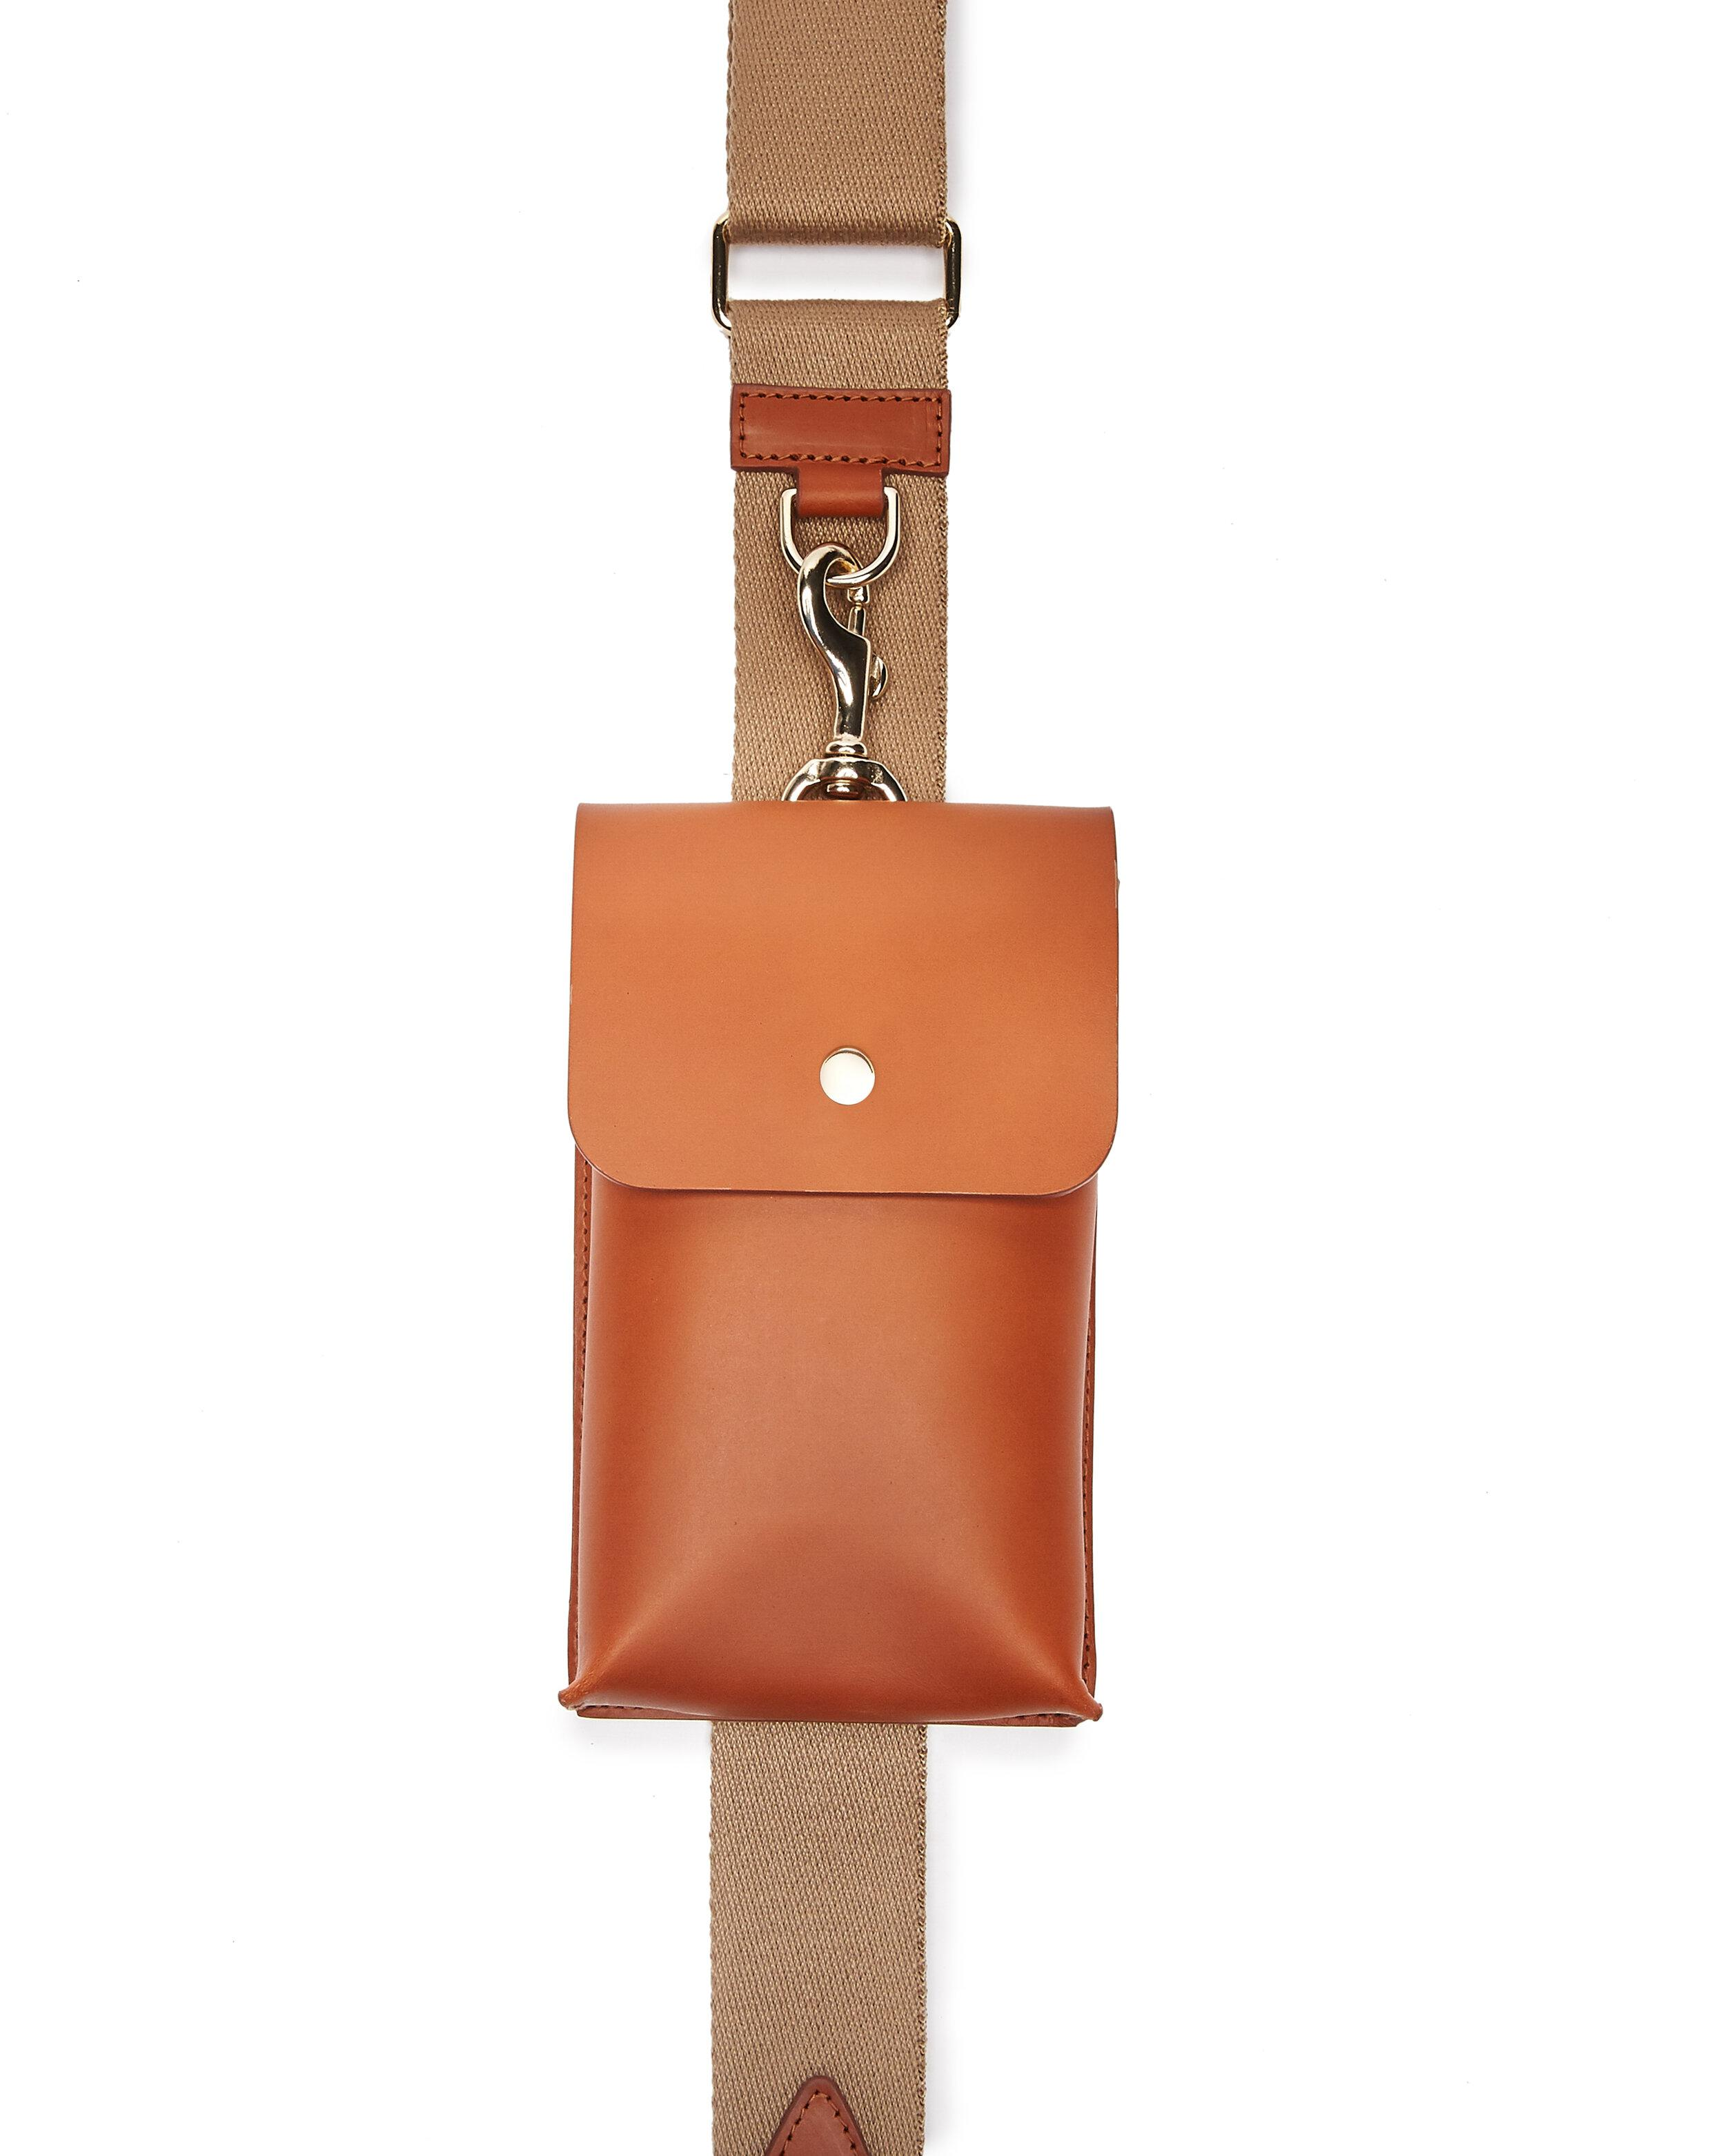 Bottle Bag with Bottle - Tan Leather 1